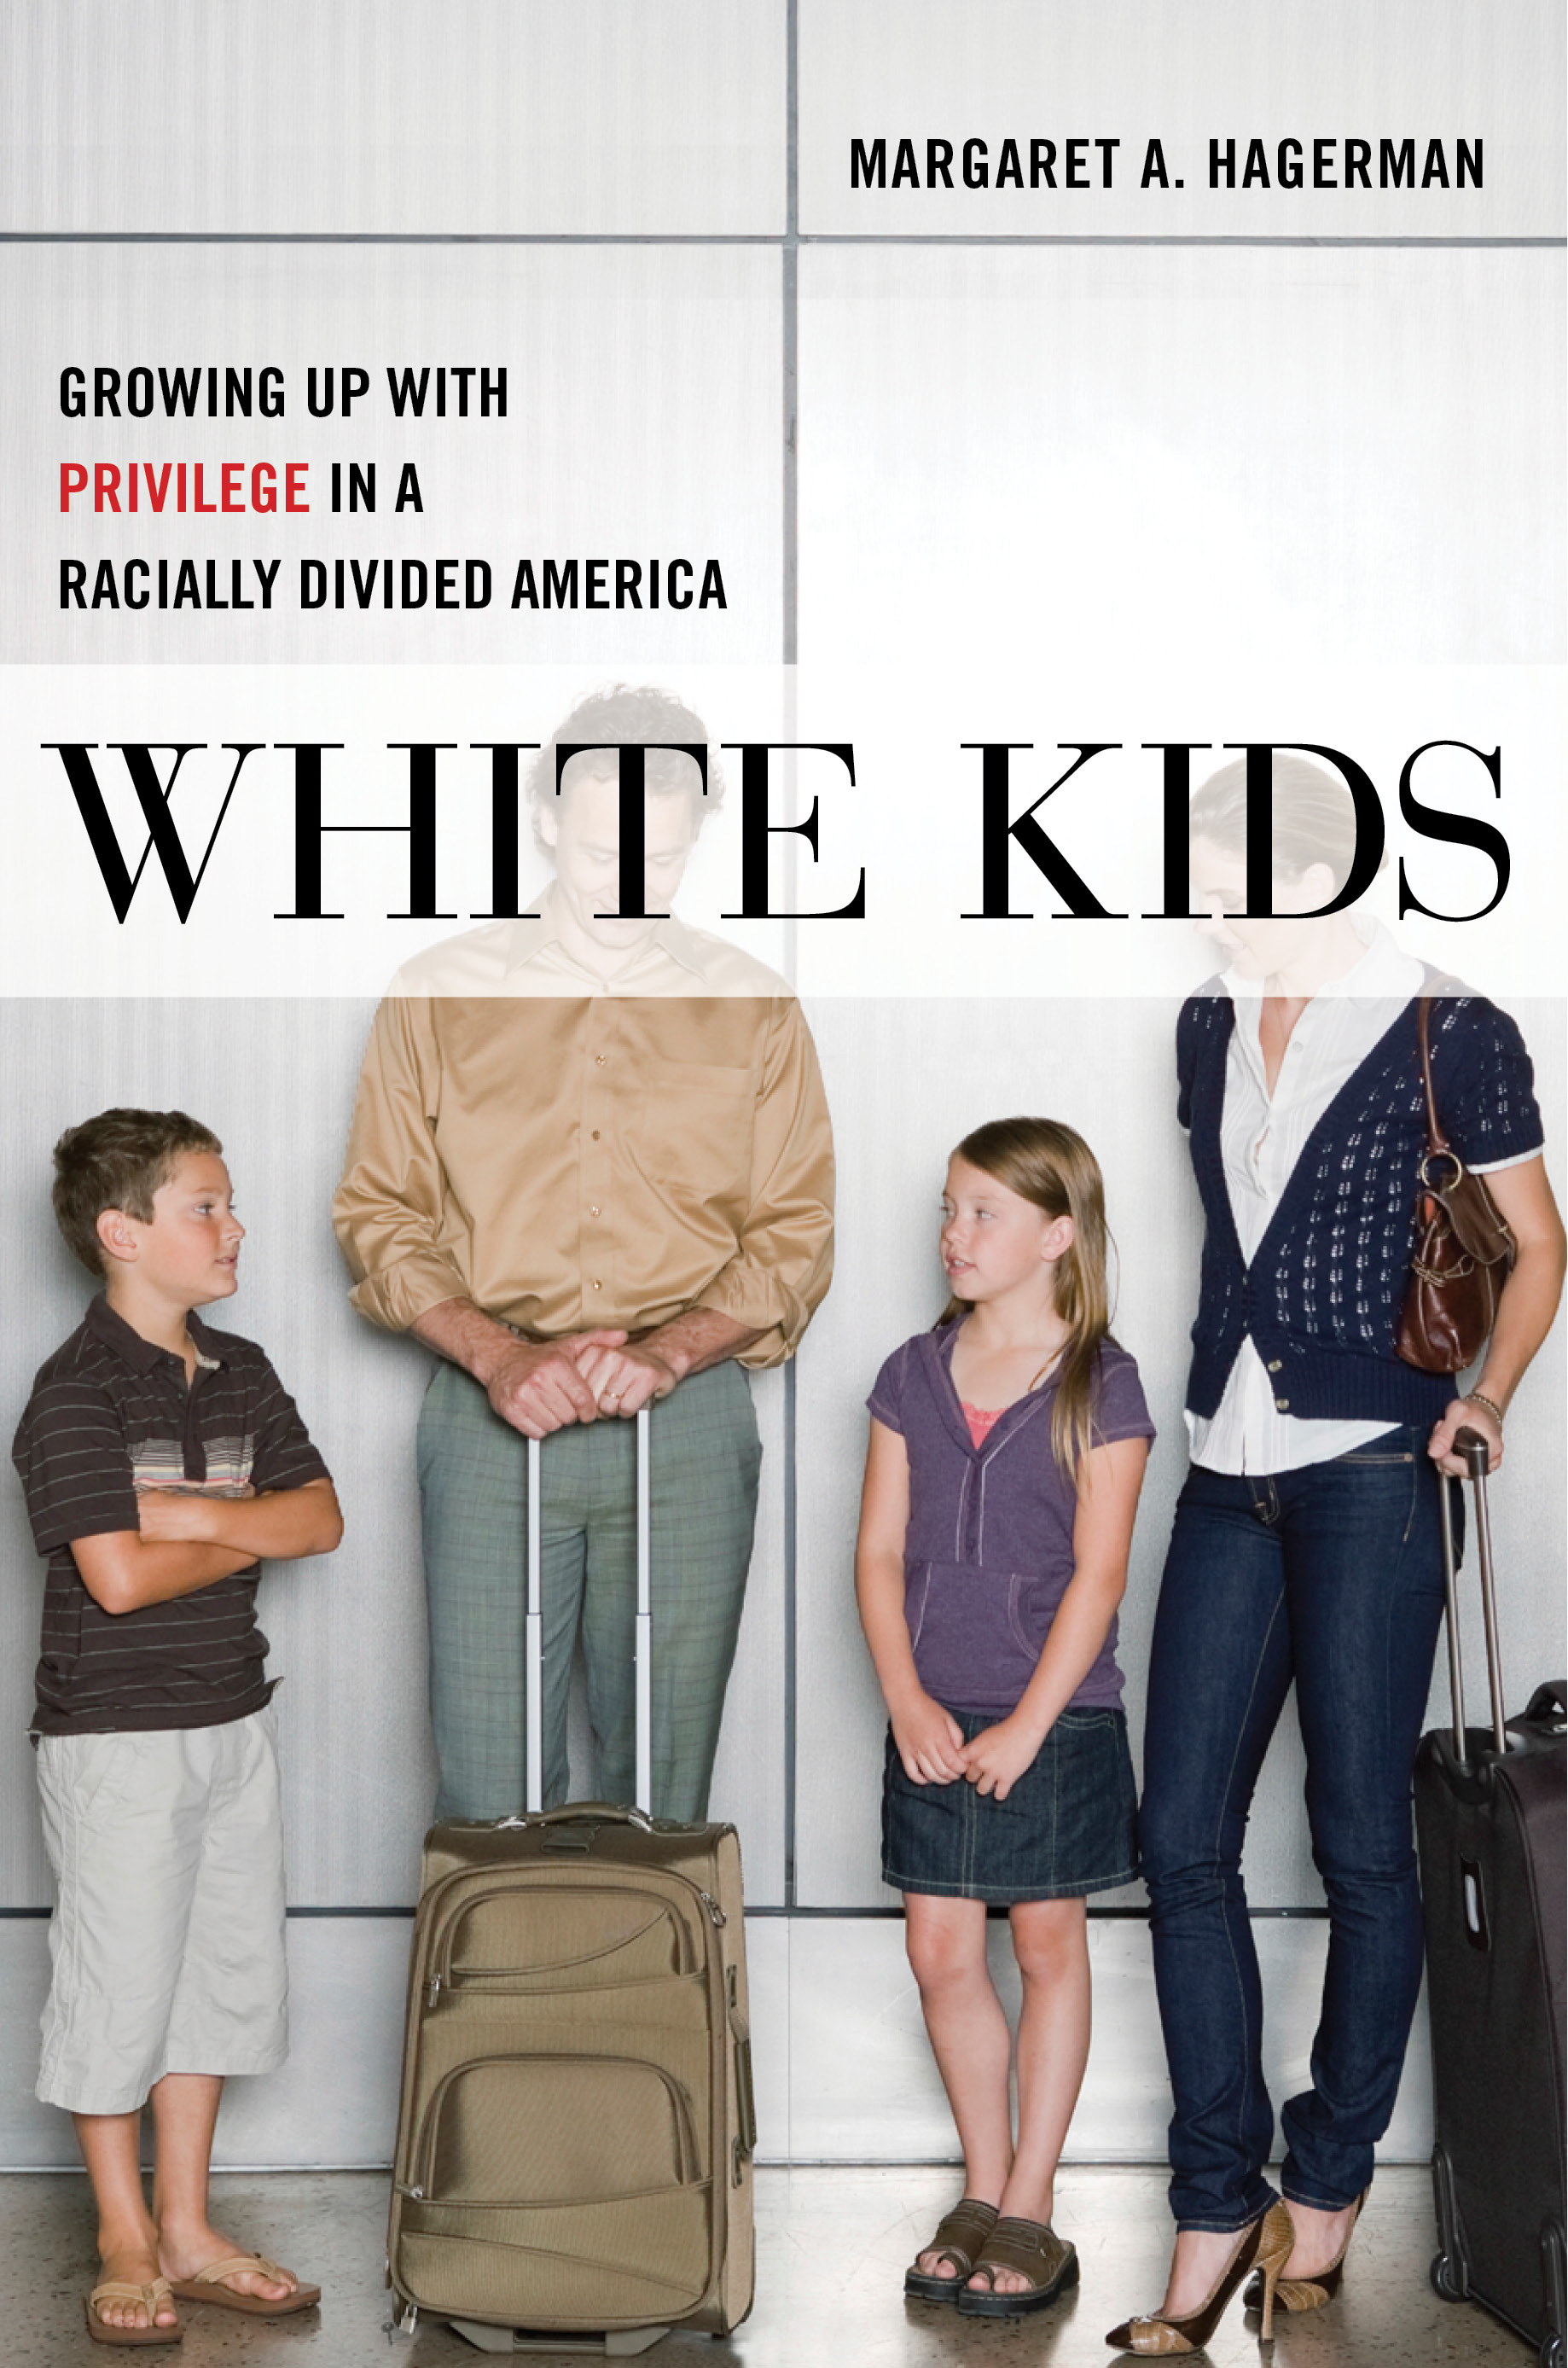 White Kids [electronic resource] : Growing Up with Privilege in a Racially Divided America